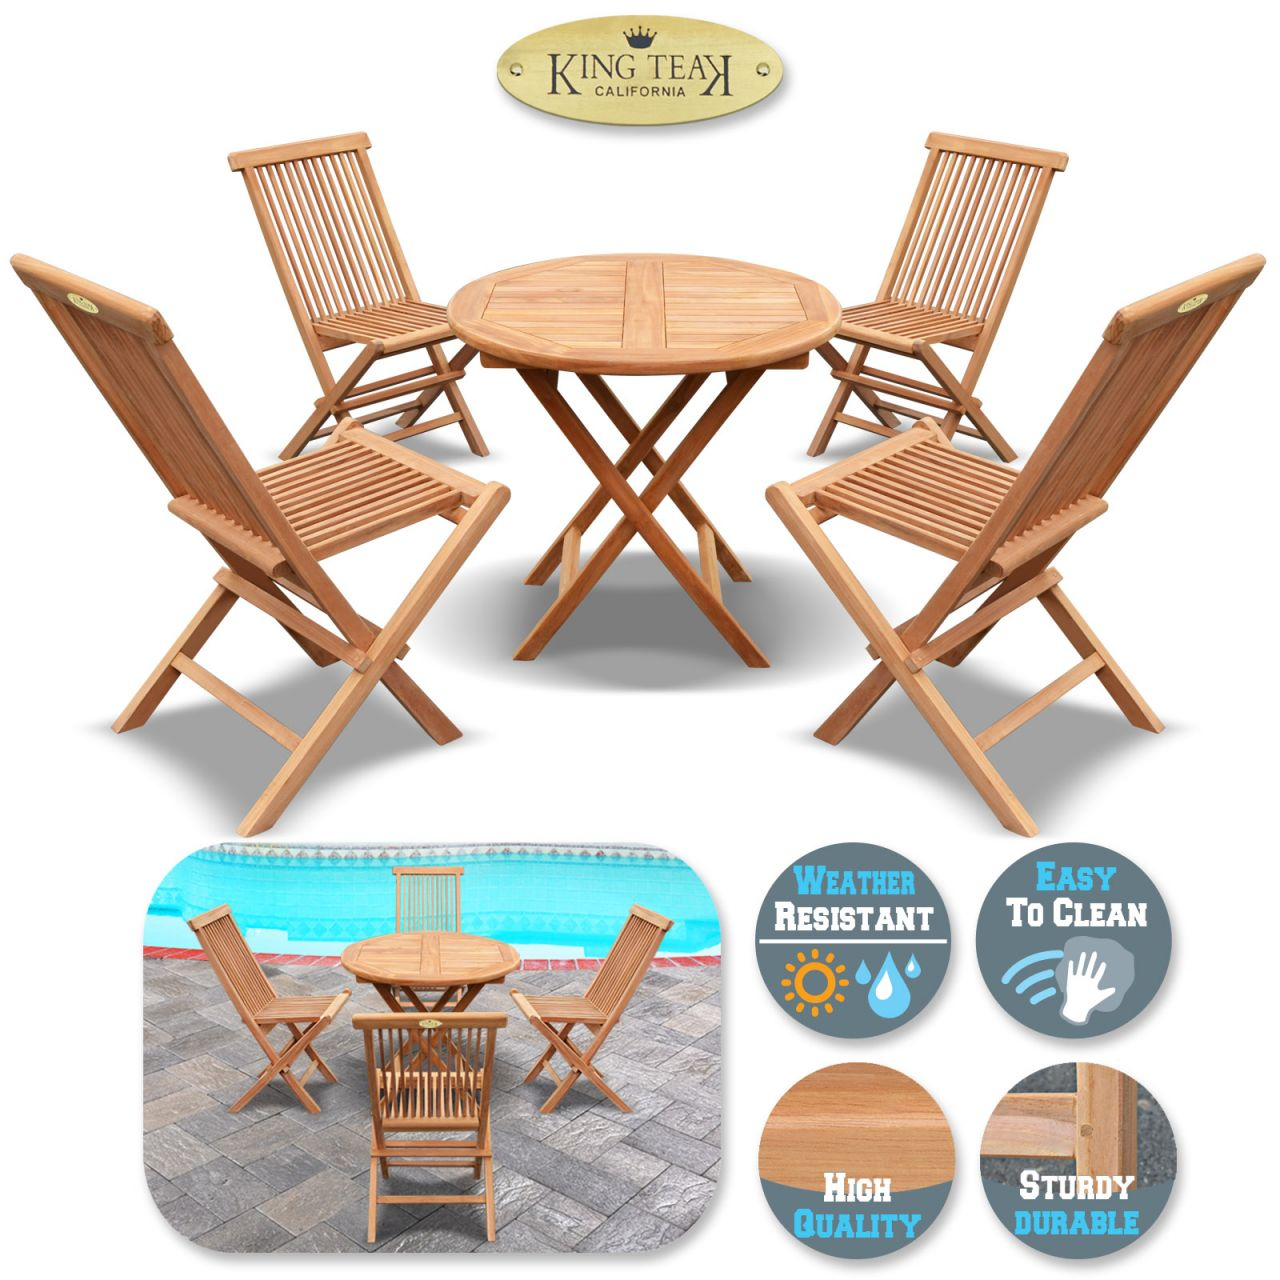 King Teak Outdoor Golden Teak Wood 4Pc Folding Chair And 1 Pc Round Table  Set, Patio Furniture Set with Beautiful Teak Outdoor Furniture Set